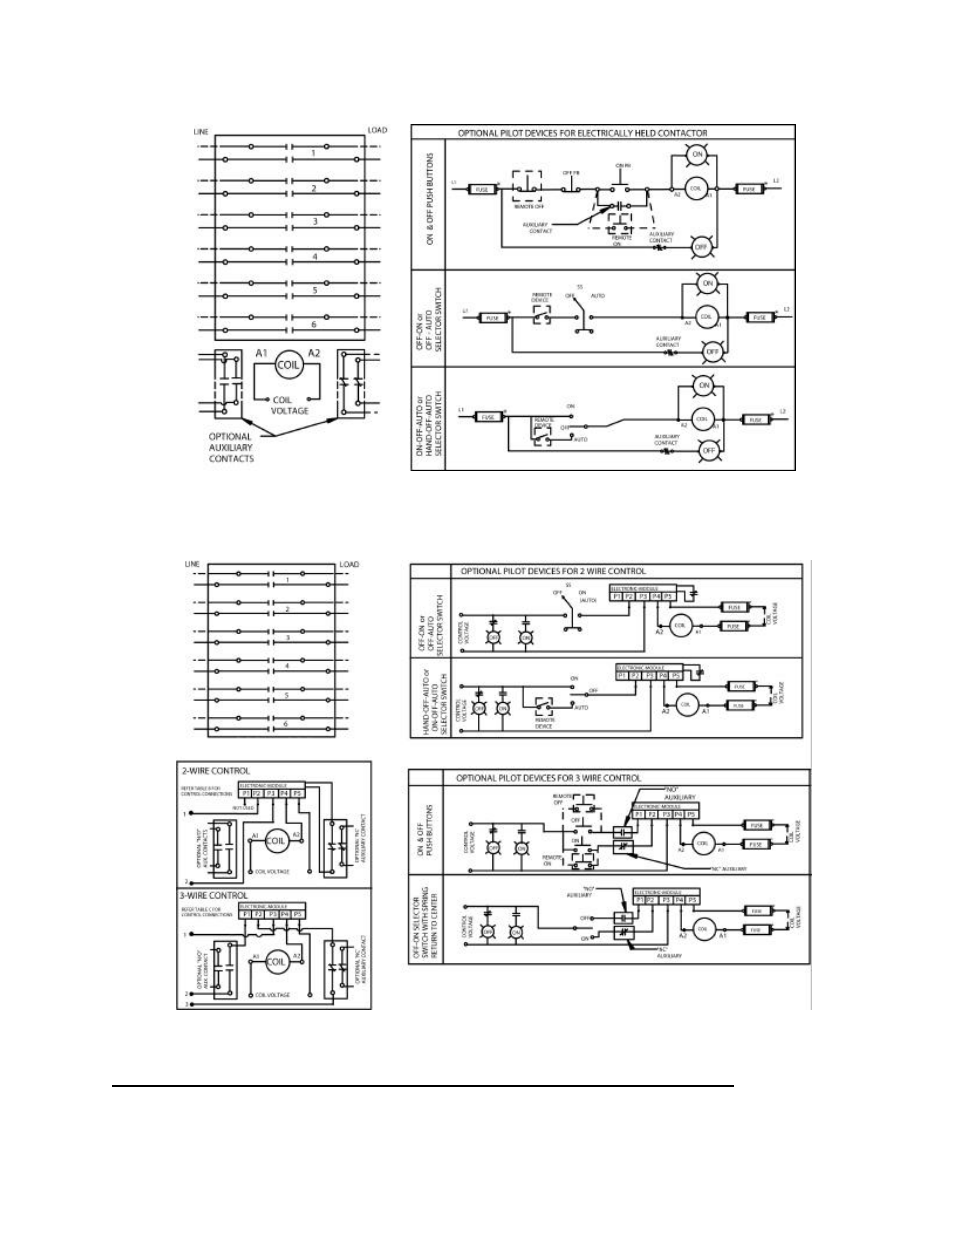 ge industrial solutions cr460 lighting contactor series user manual | page  4 / 4  manuals directory